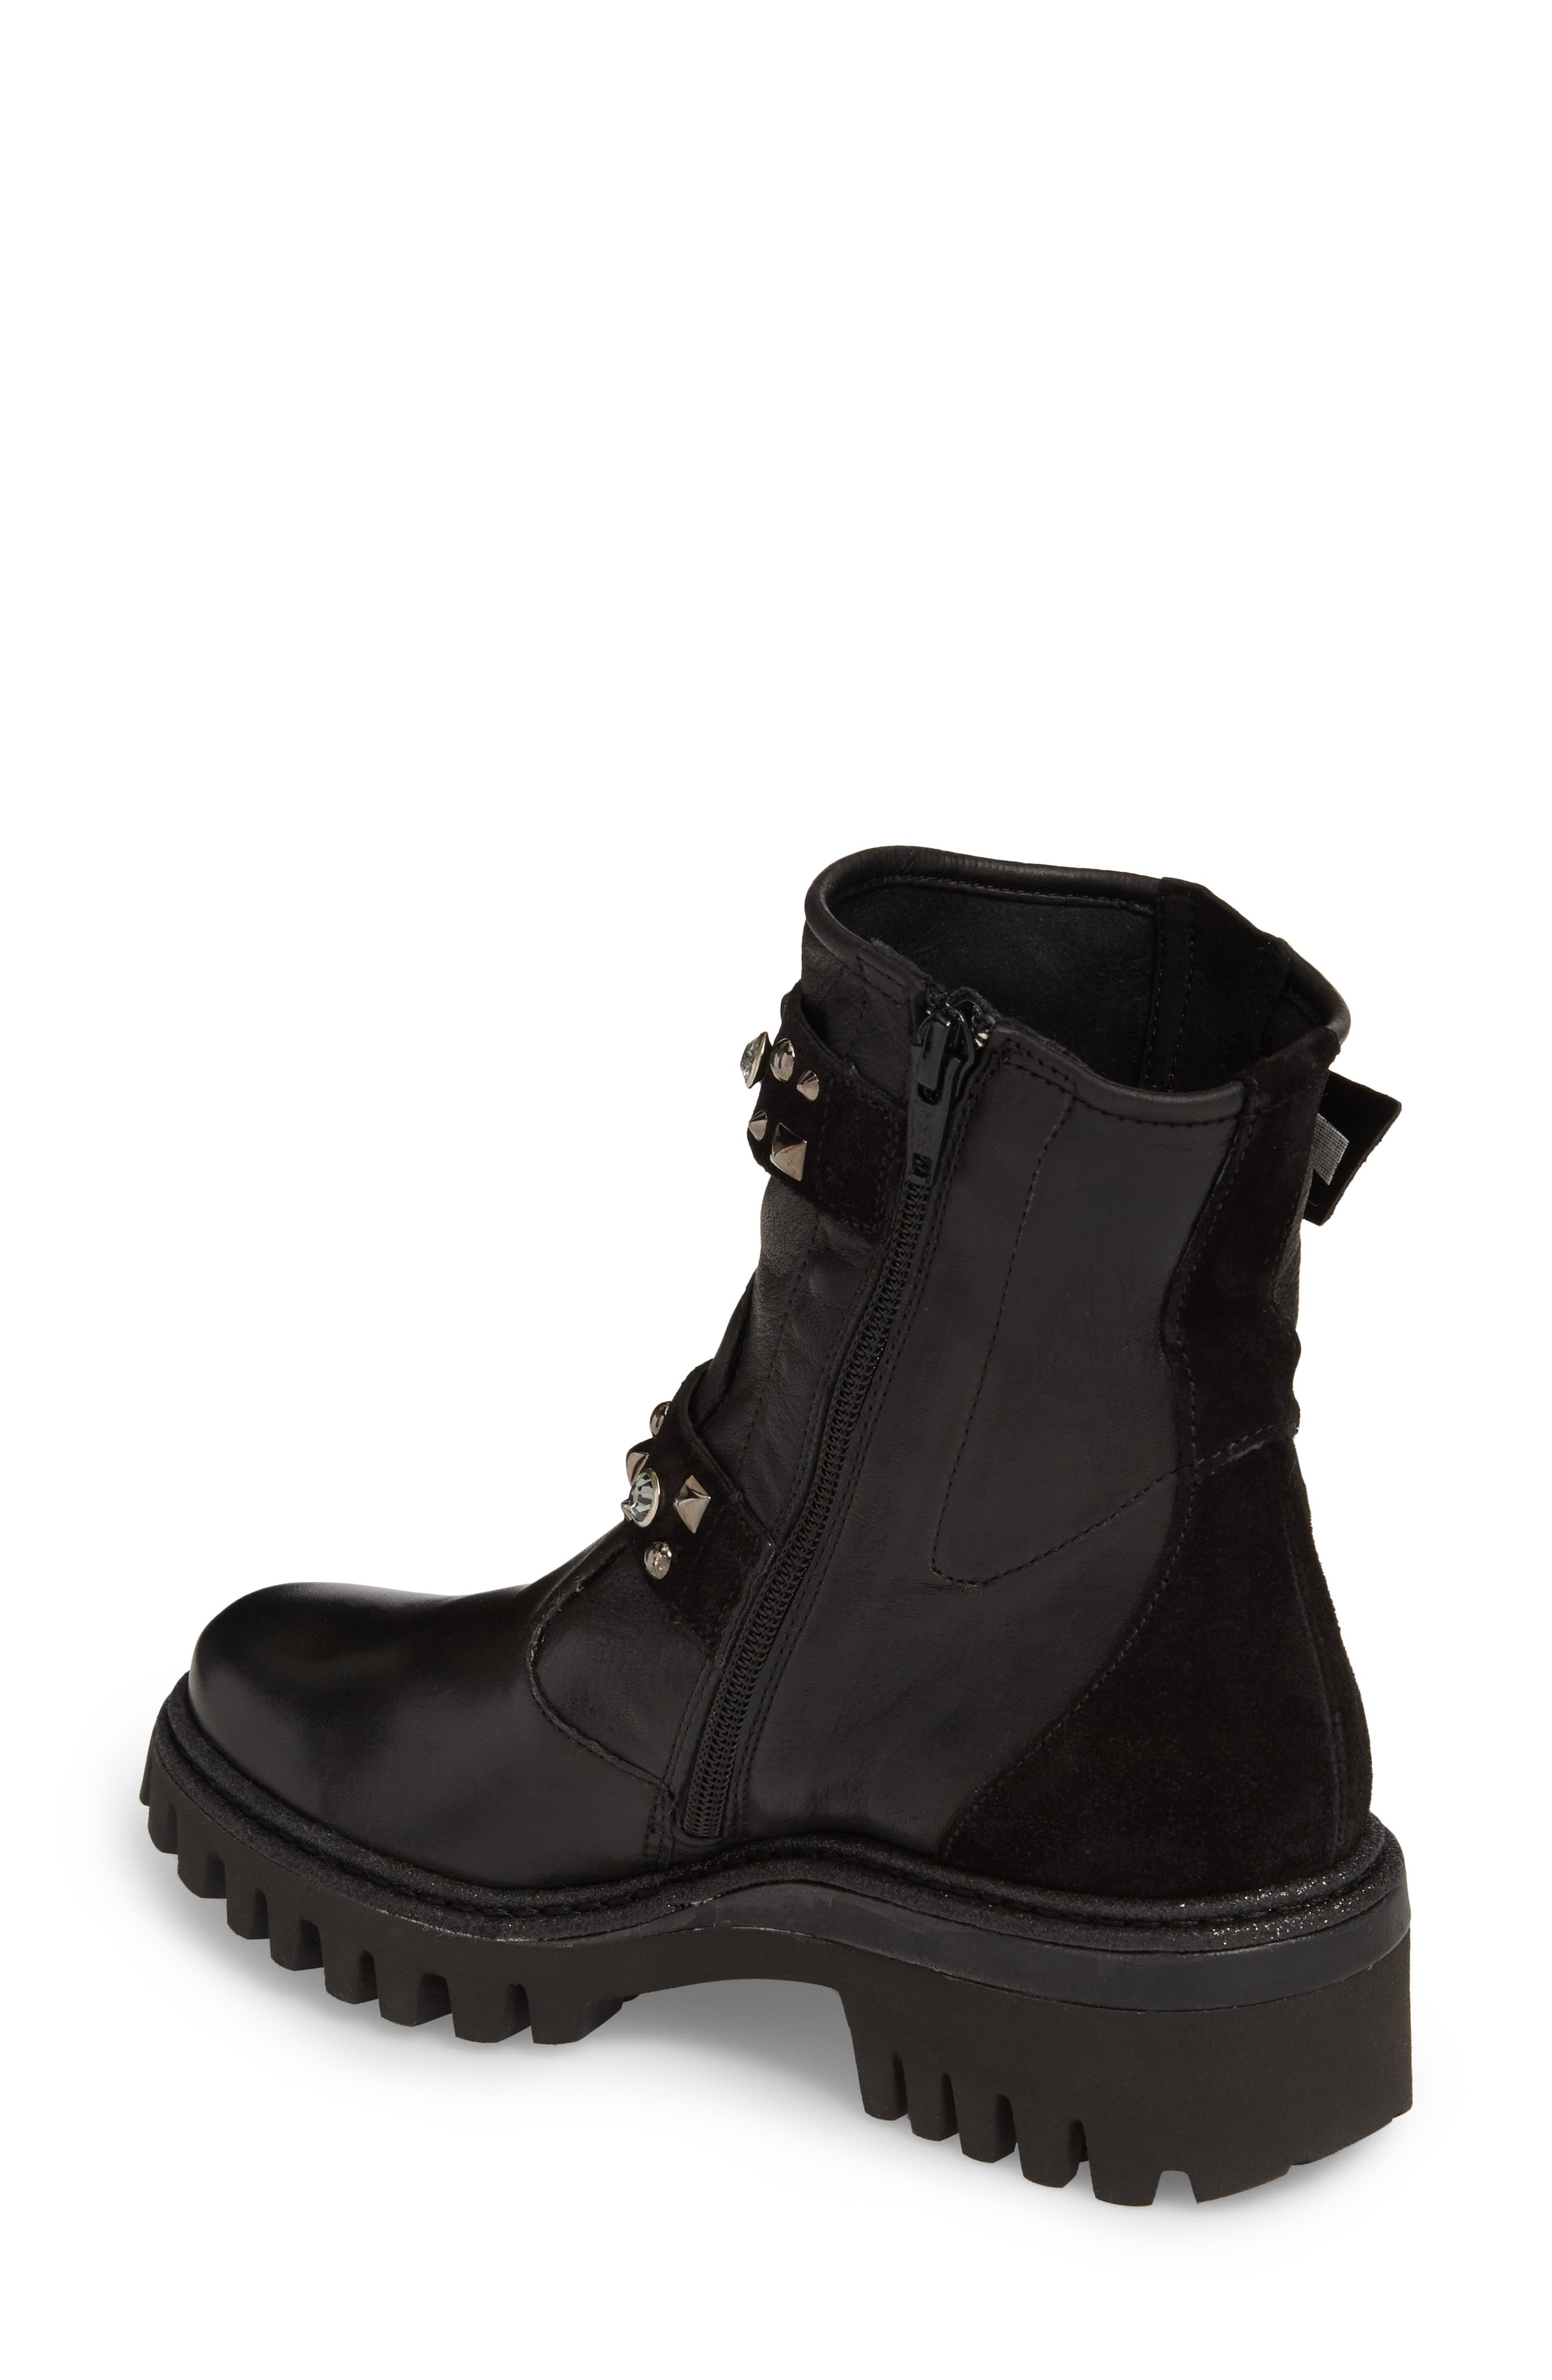 Rivet Moto Boot,                             Alternate thumbnail 2, color,                             009